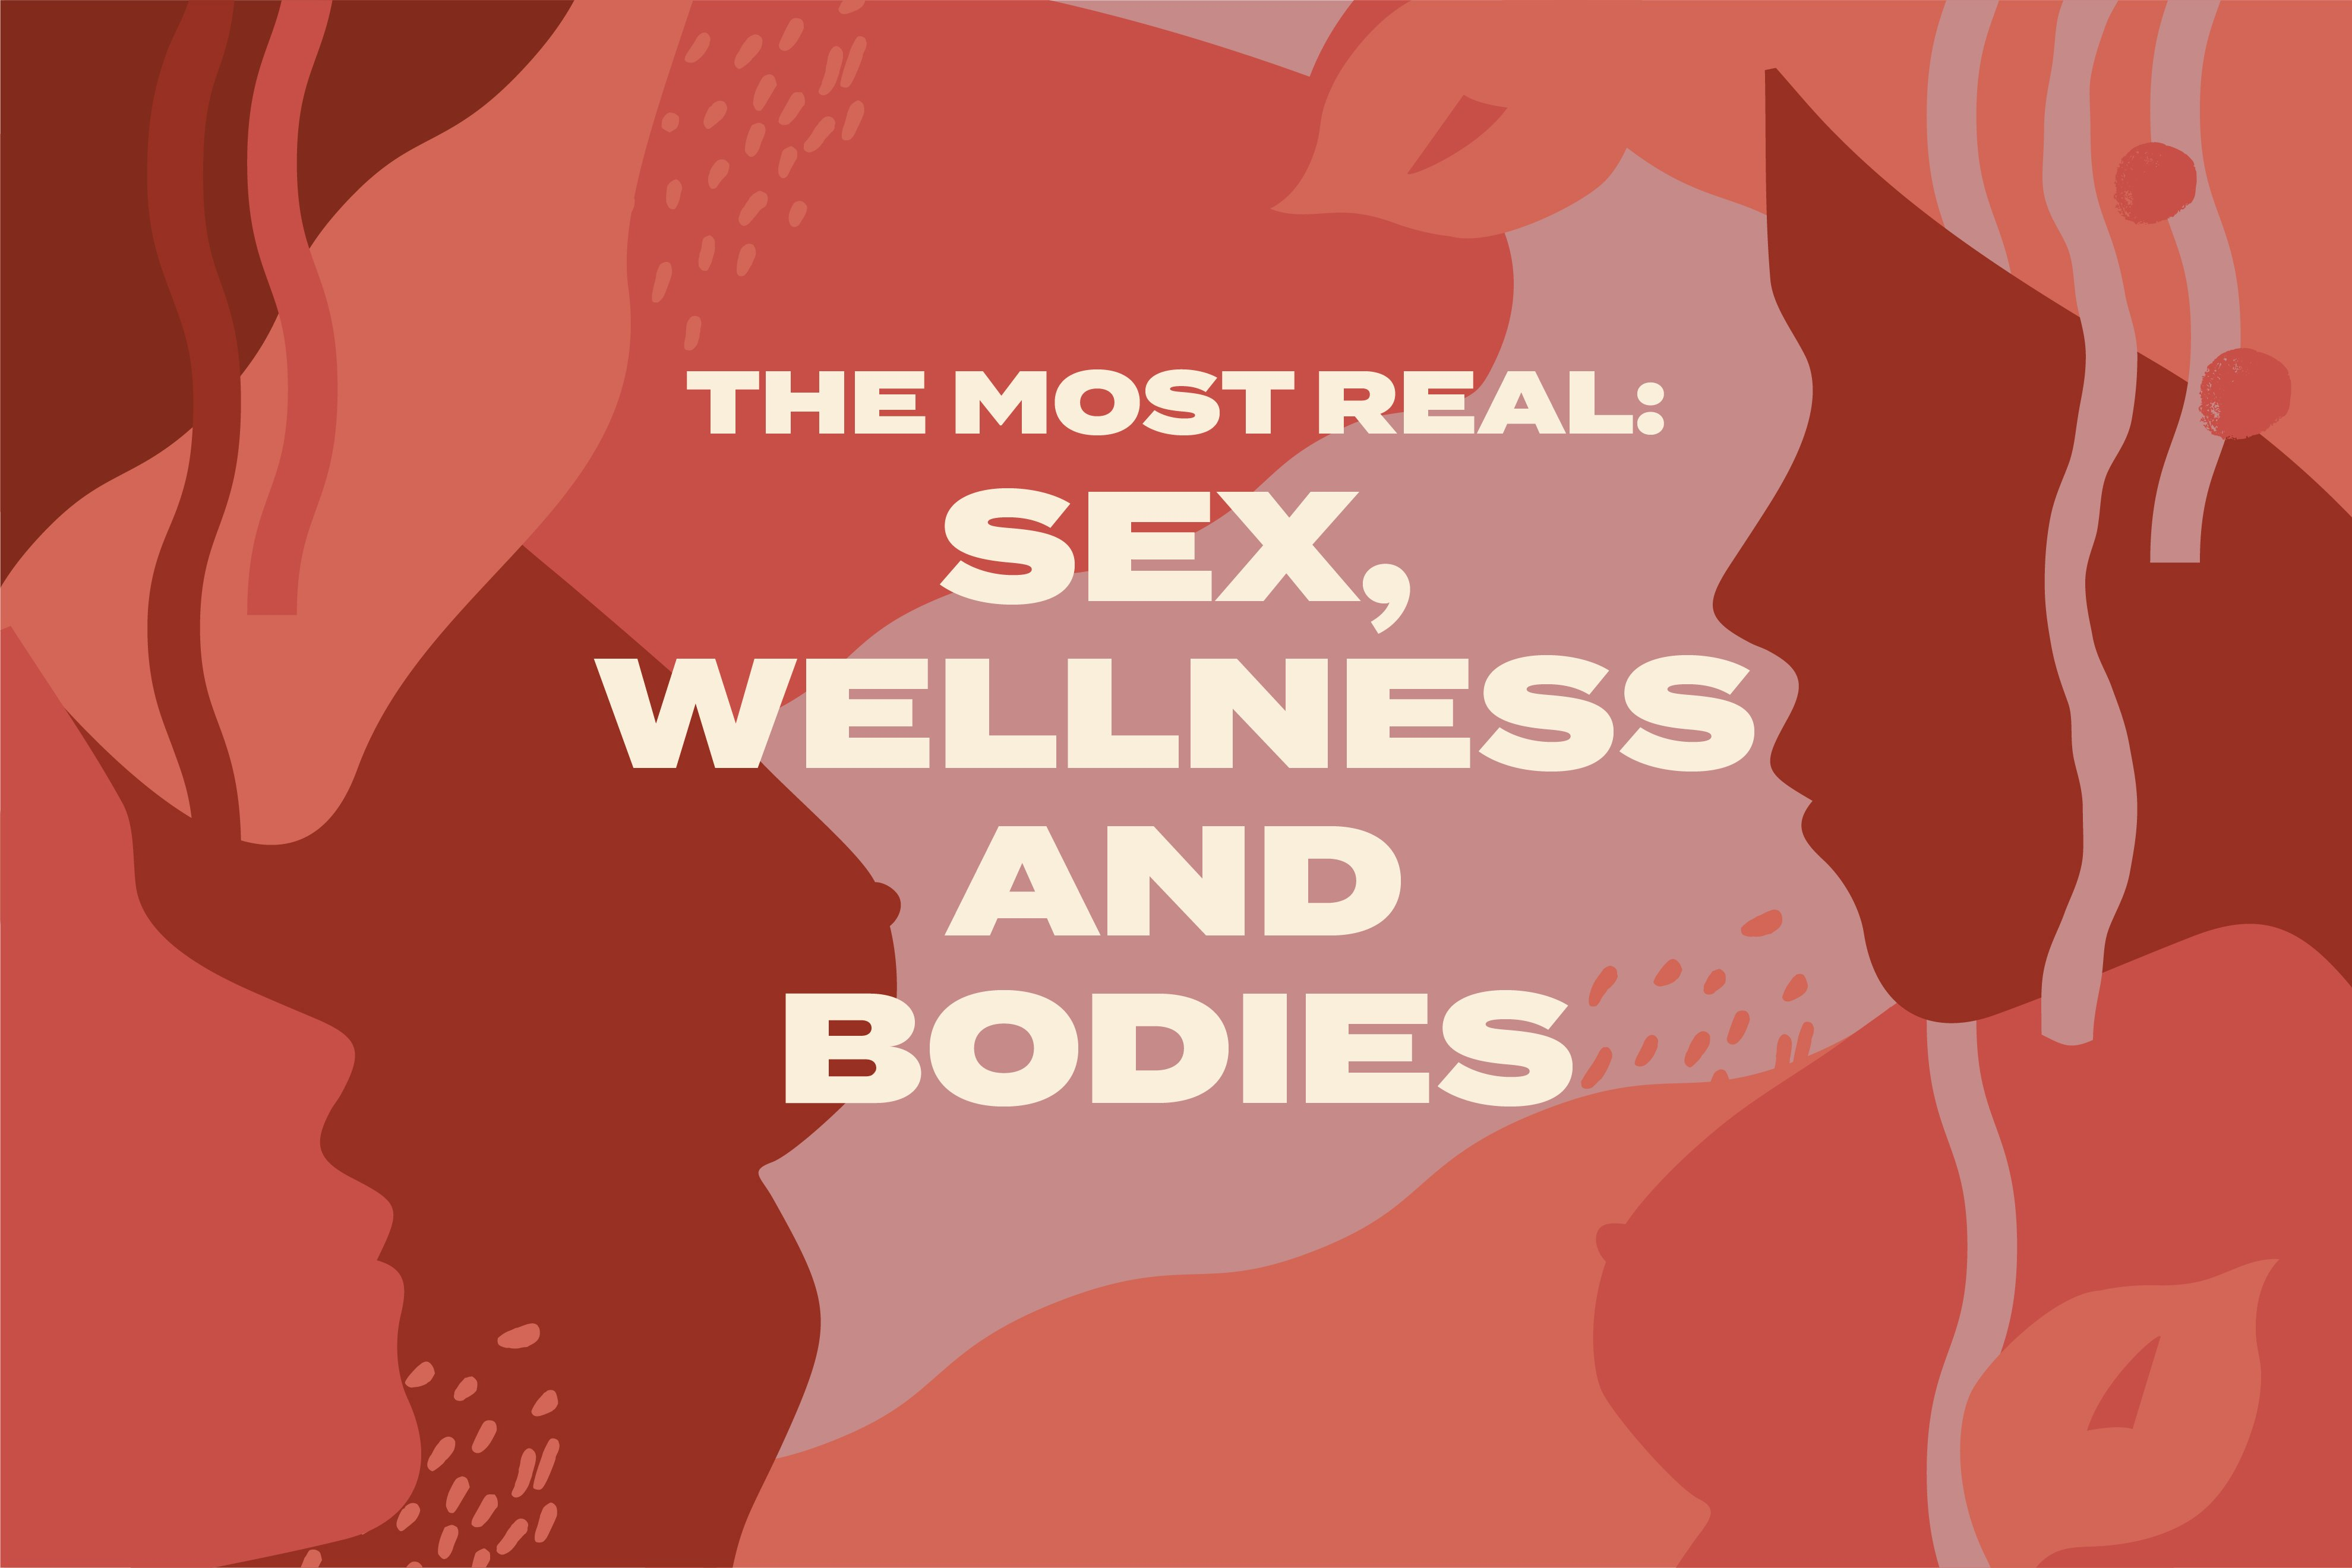 The Most Real: Sex, Wellness and Bodies